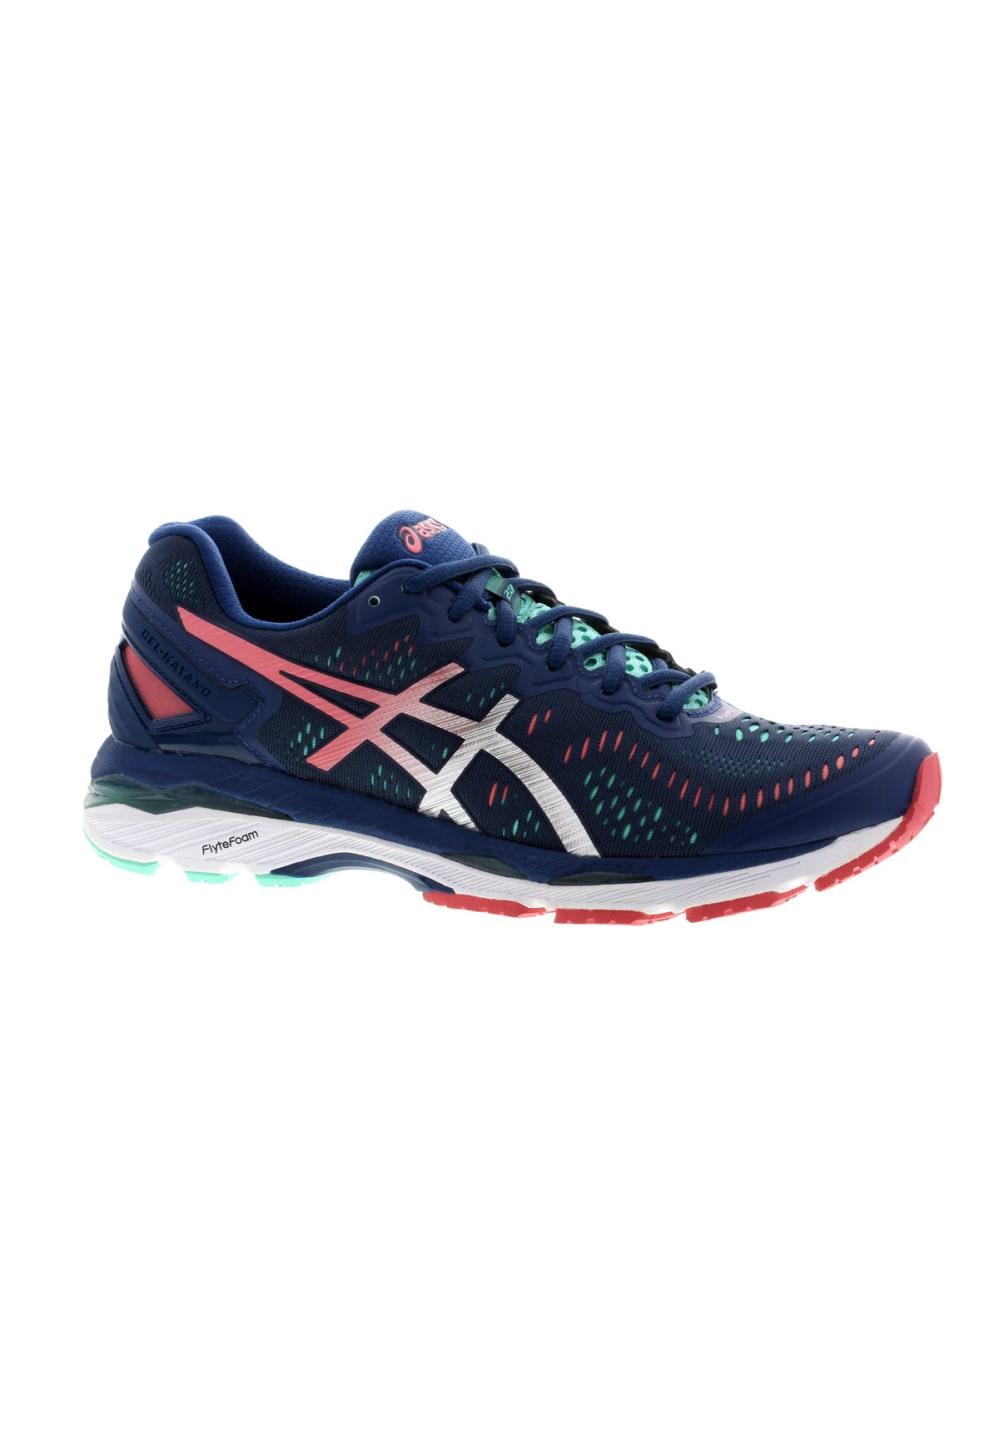 the best attitude 41f24 58079 ASICS GEL-Kayano 23 - Running shoes for Women - Blue